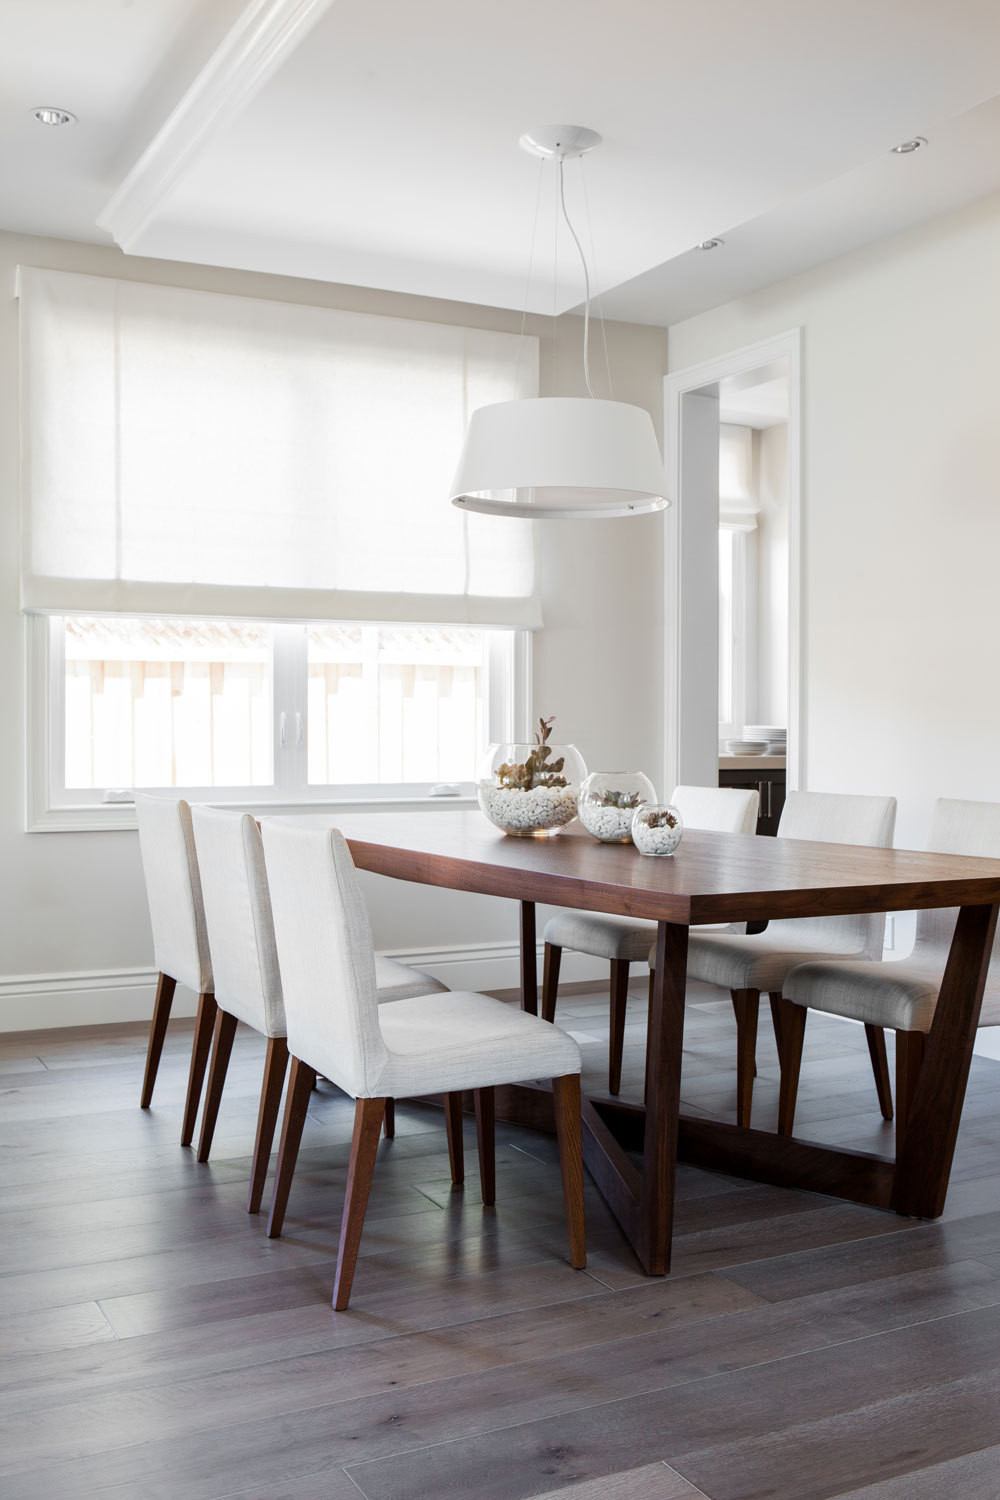 A walnut table from 7th & Seventh Designs anchors the otherwise pale dining room.